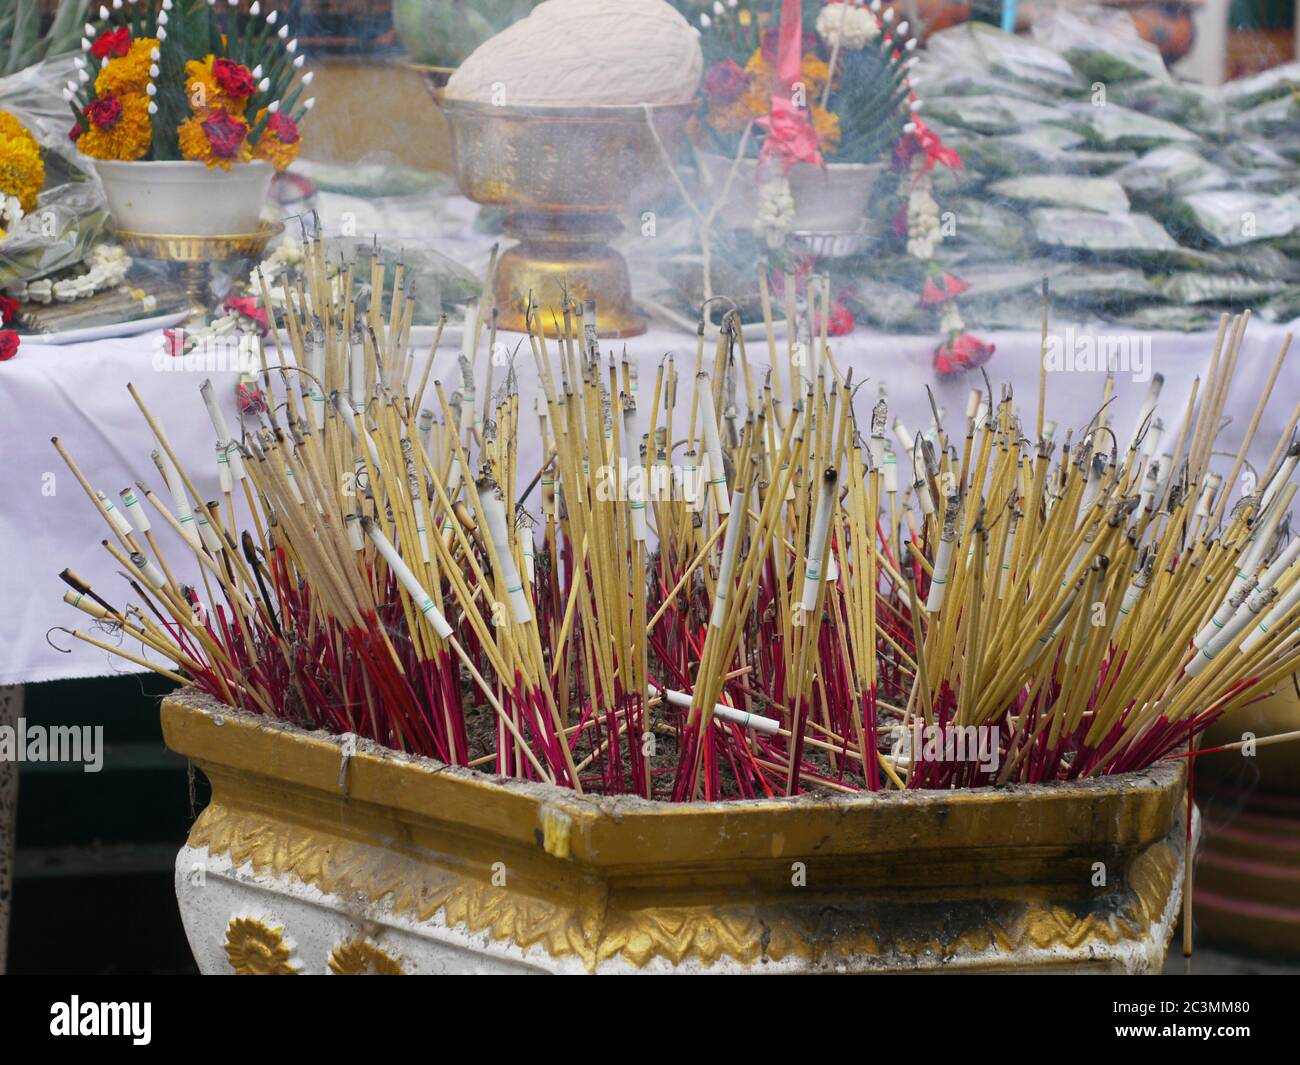 Nakhon Chaisi March 19 Burning Incense Sticks With Cigarettes Attached At The Tattoo Festival At Wat Bang Phra On March 19 2011 In Nakhon Chaisi Stock Photo Alamy